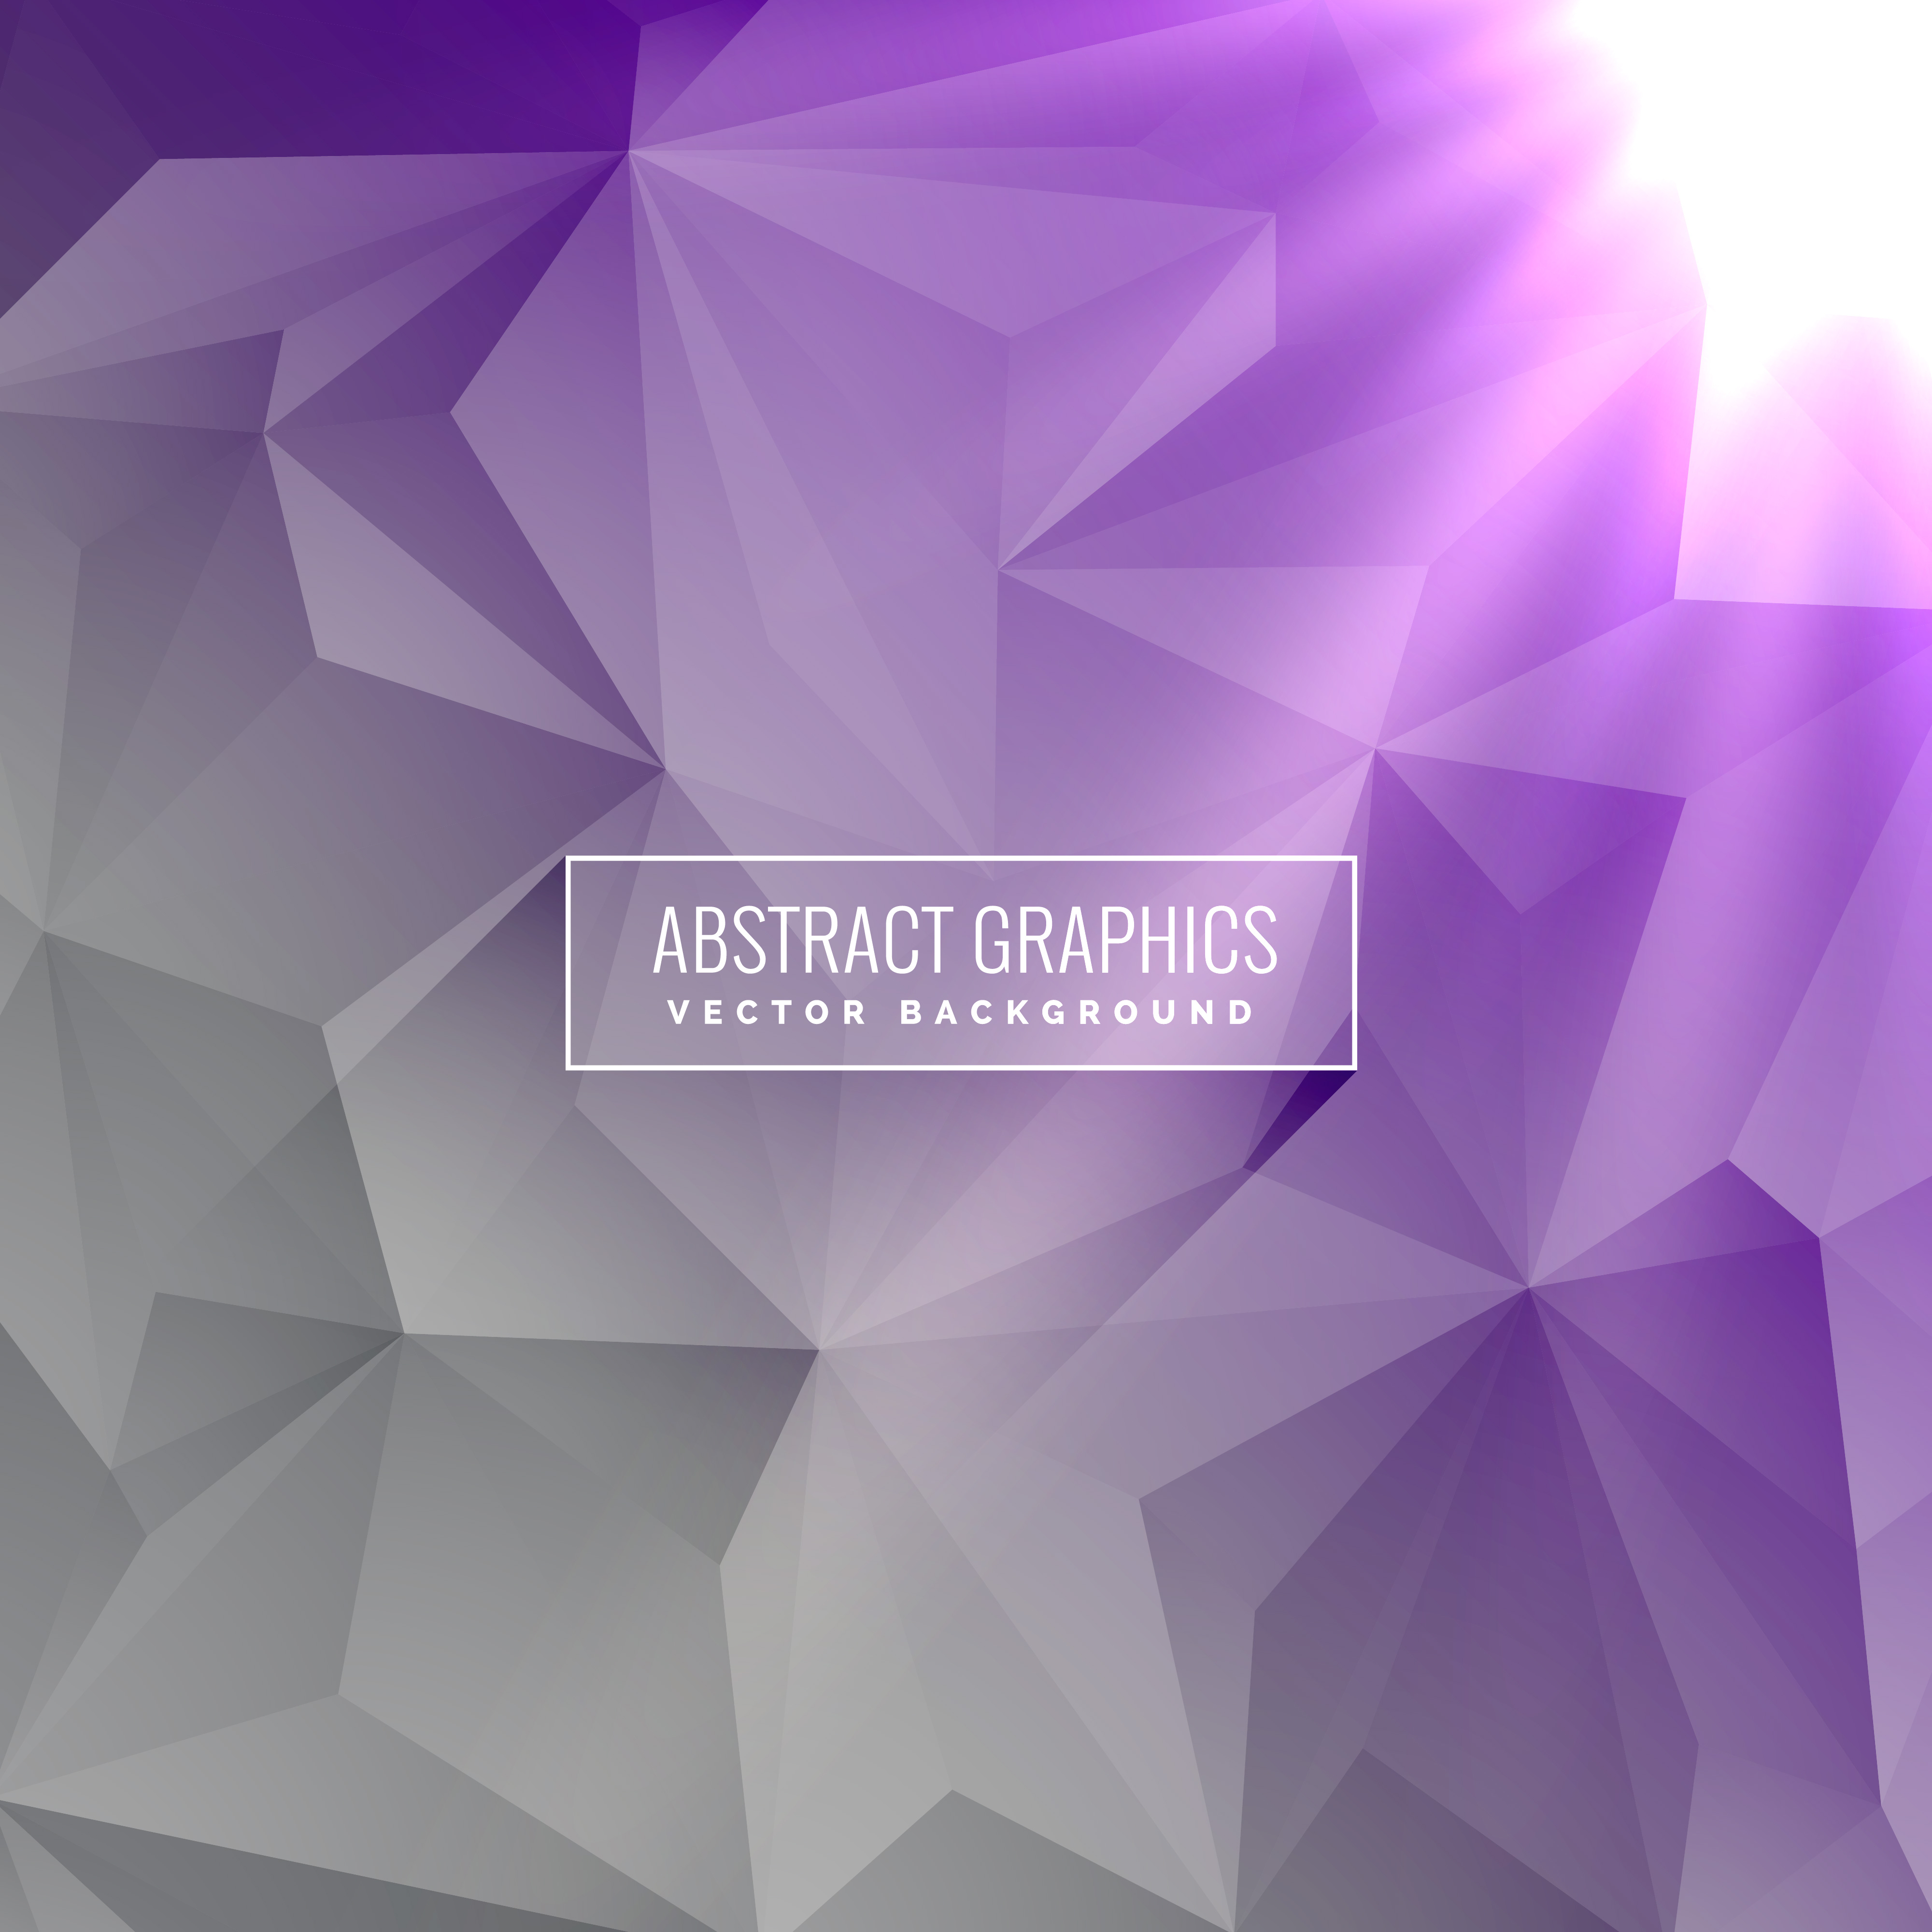 Purple Gray And White Bedroom: Elegant Gray And Purple Background With Geometric Shapes